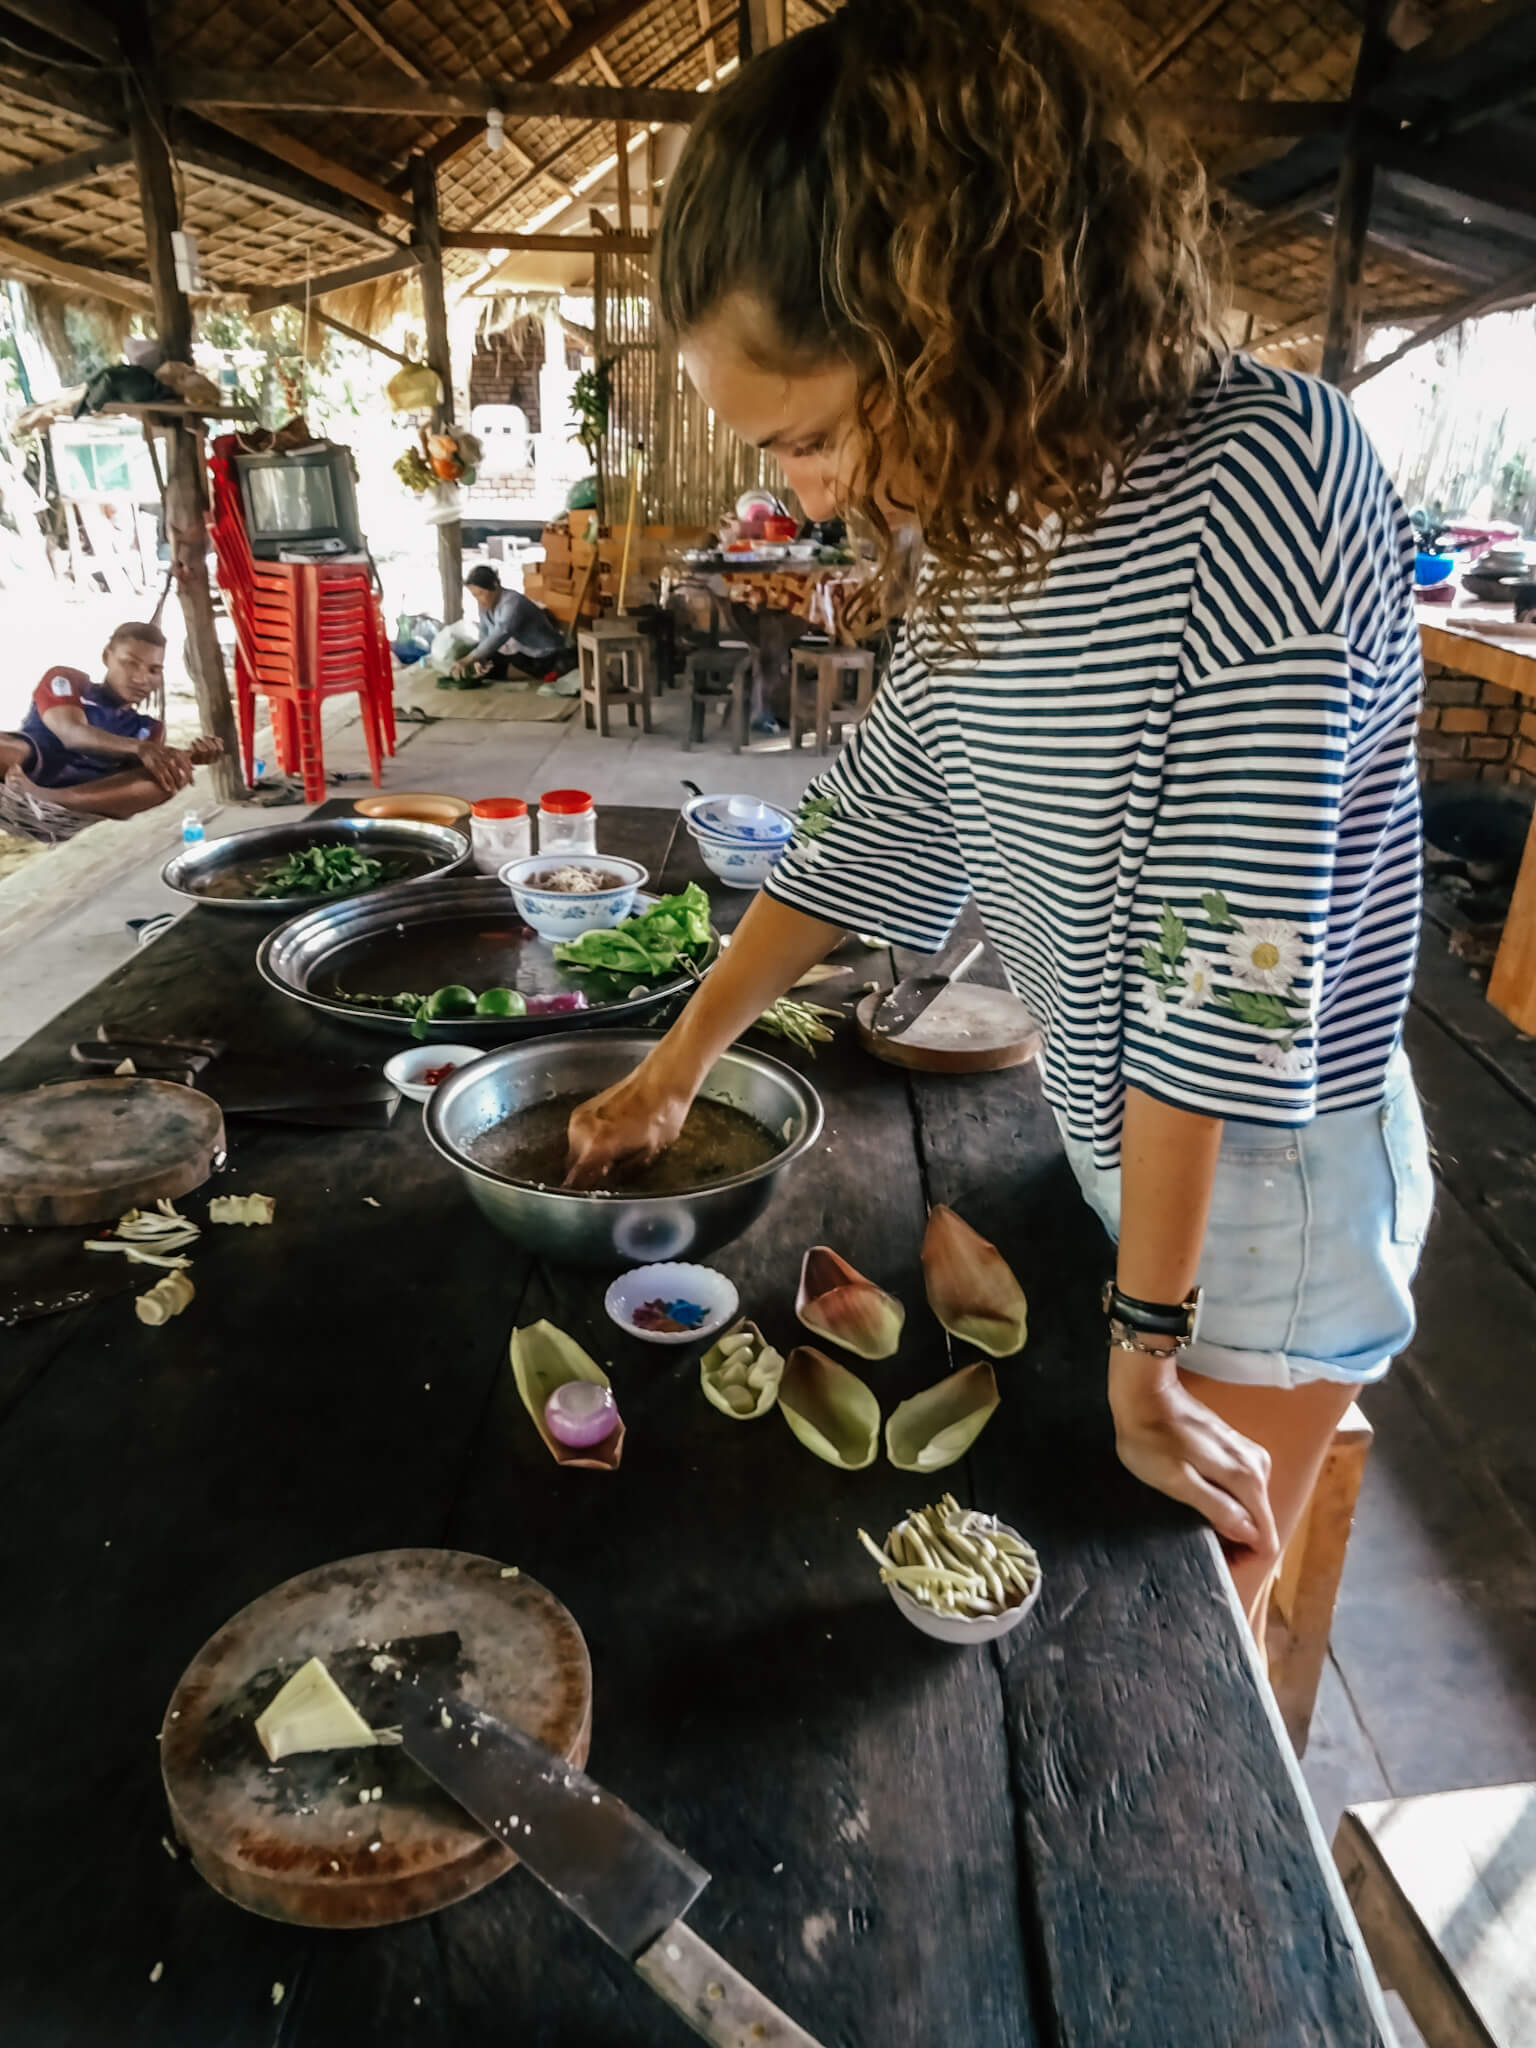 Interview: Cooking class in orphanage – Siem Reap